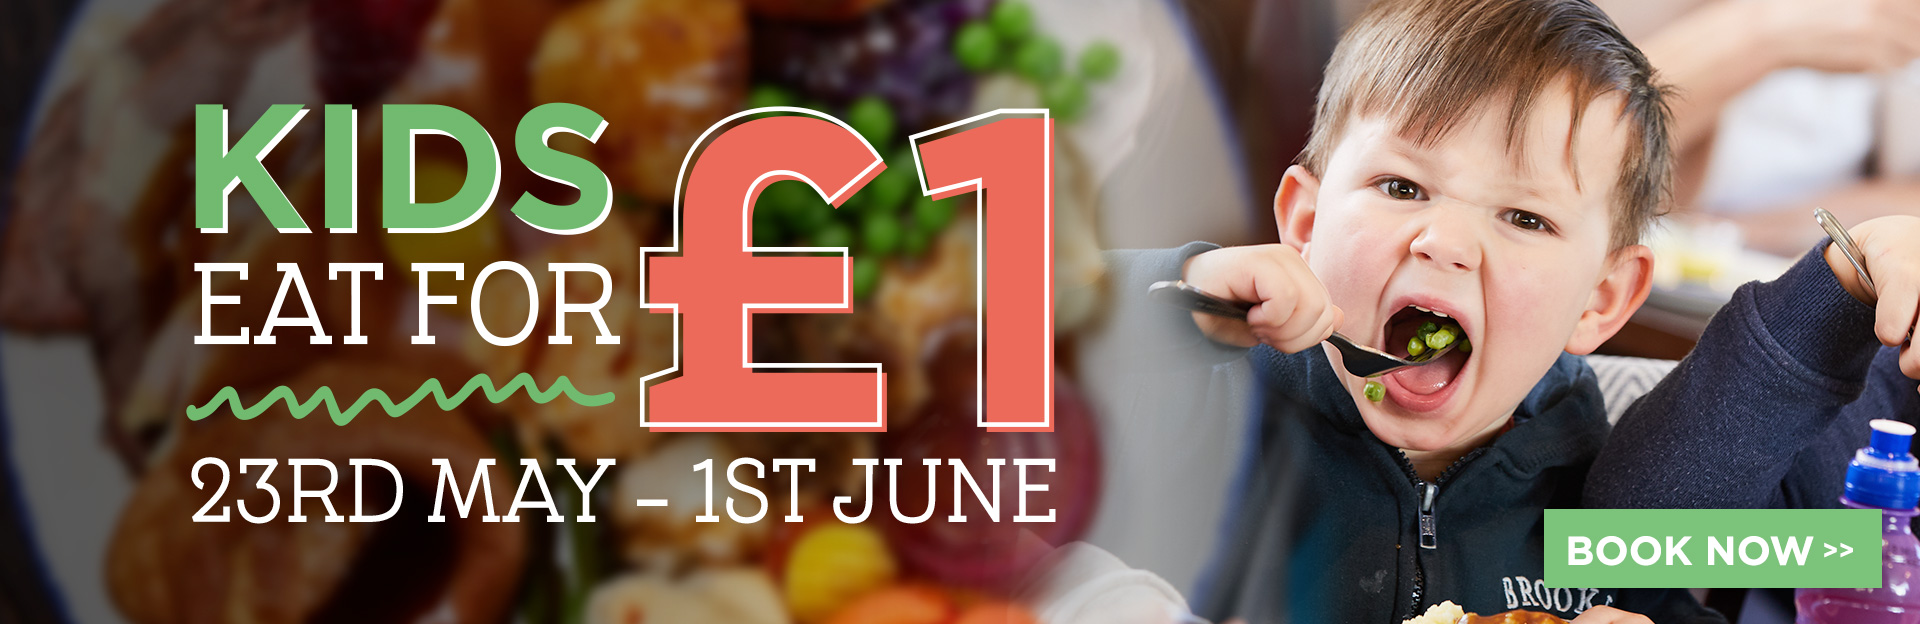 Kids eat for £1 at Wolverton House